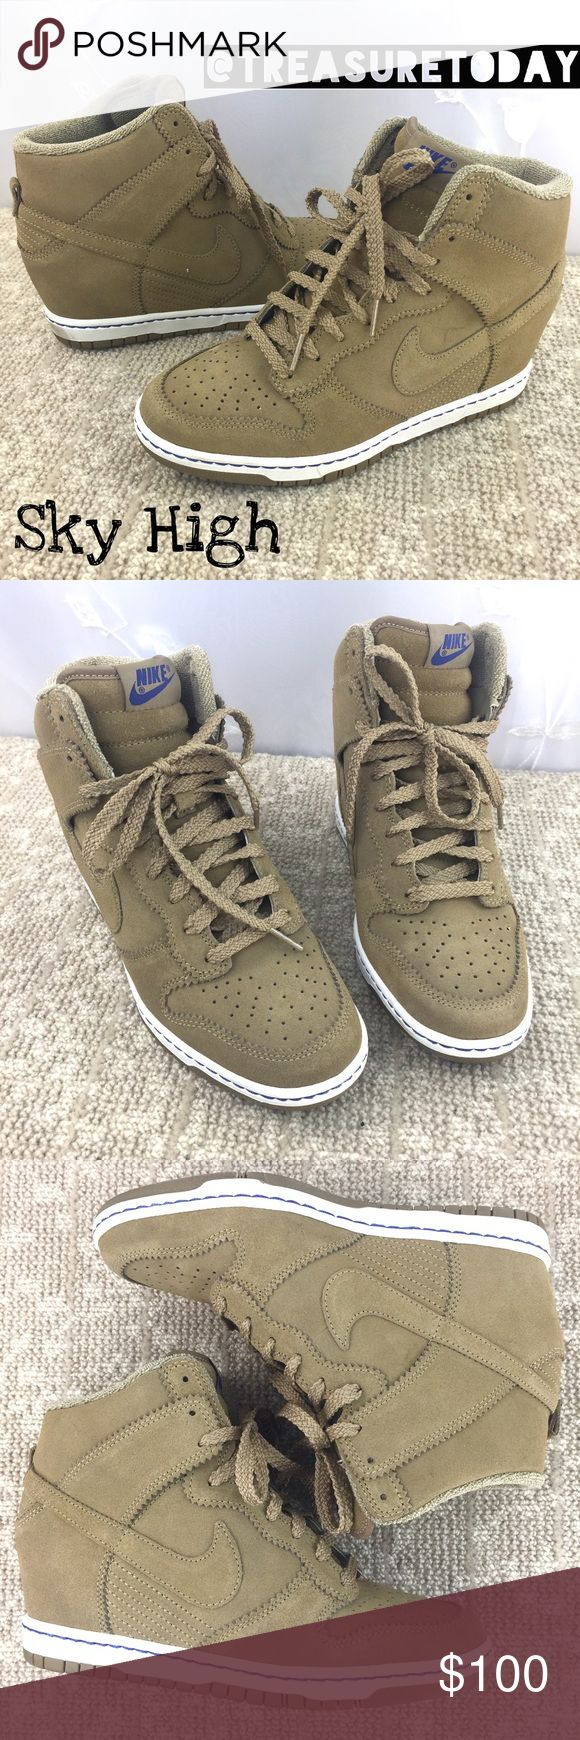 Like New! Nike Dunk Sky High Hidden Wedge Sneakers Beautiful khaki / brown Suede Leather Hidden Wedge Sneakers. Worn only once for a couple of hours- excellent condition. Super comfortable, just a tad too big for me. My loss-your gain. No box. Bundle 2 or more items to get %10 off. 💖 Nike Shoes Wedges